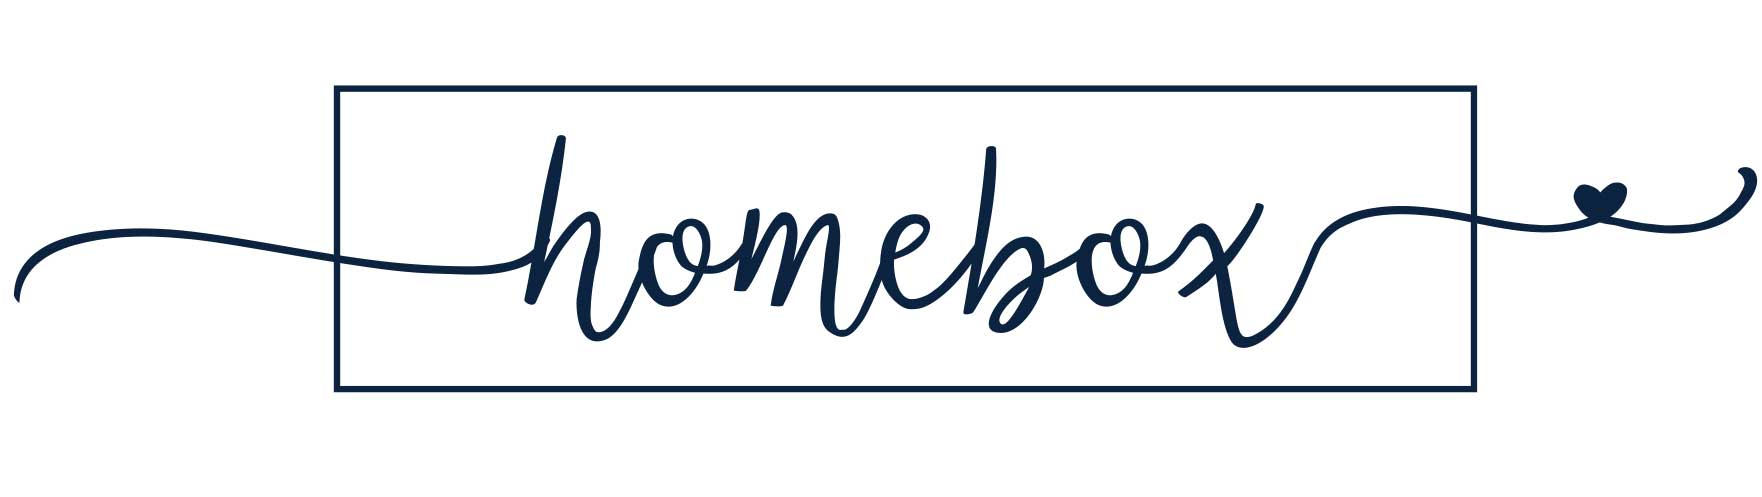 HOMEBOX Co.